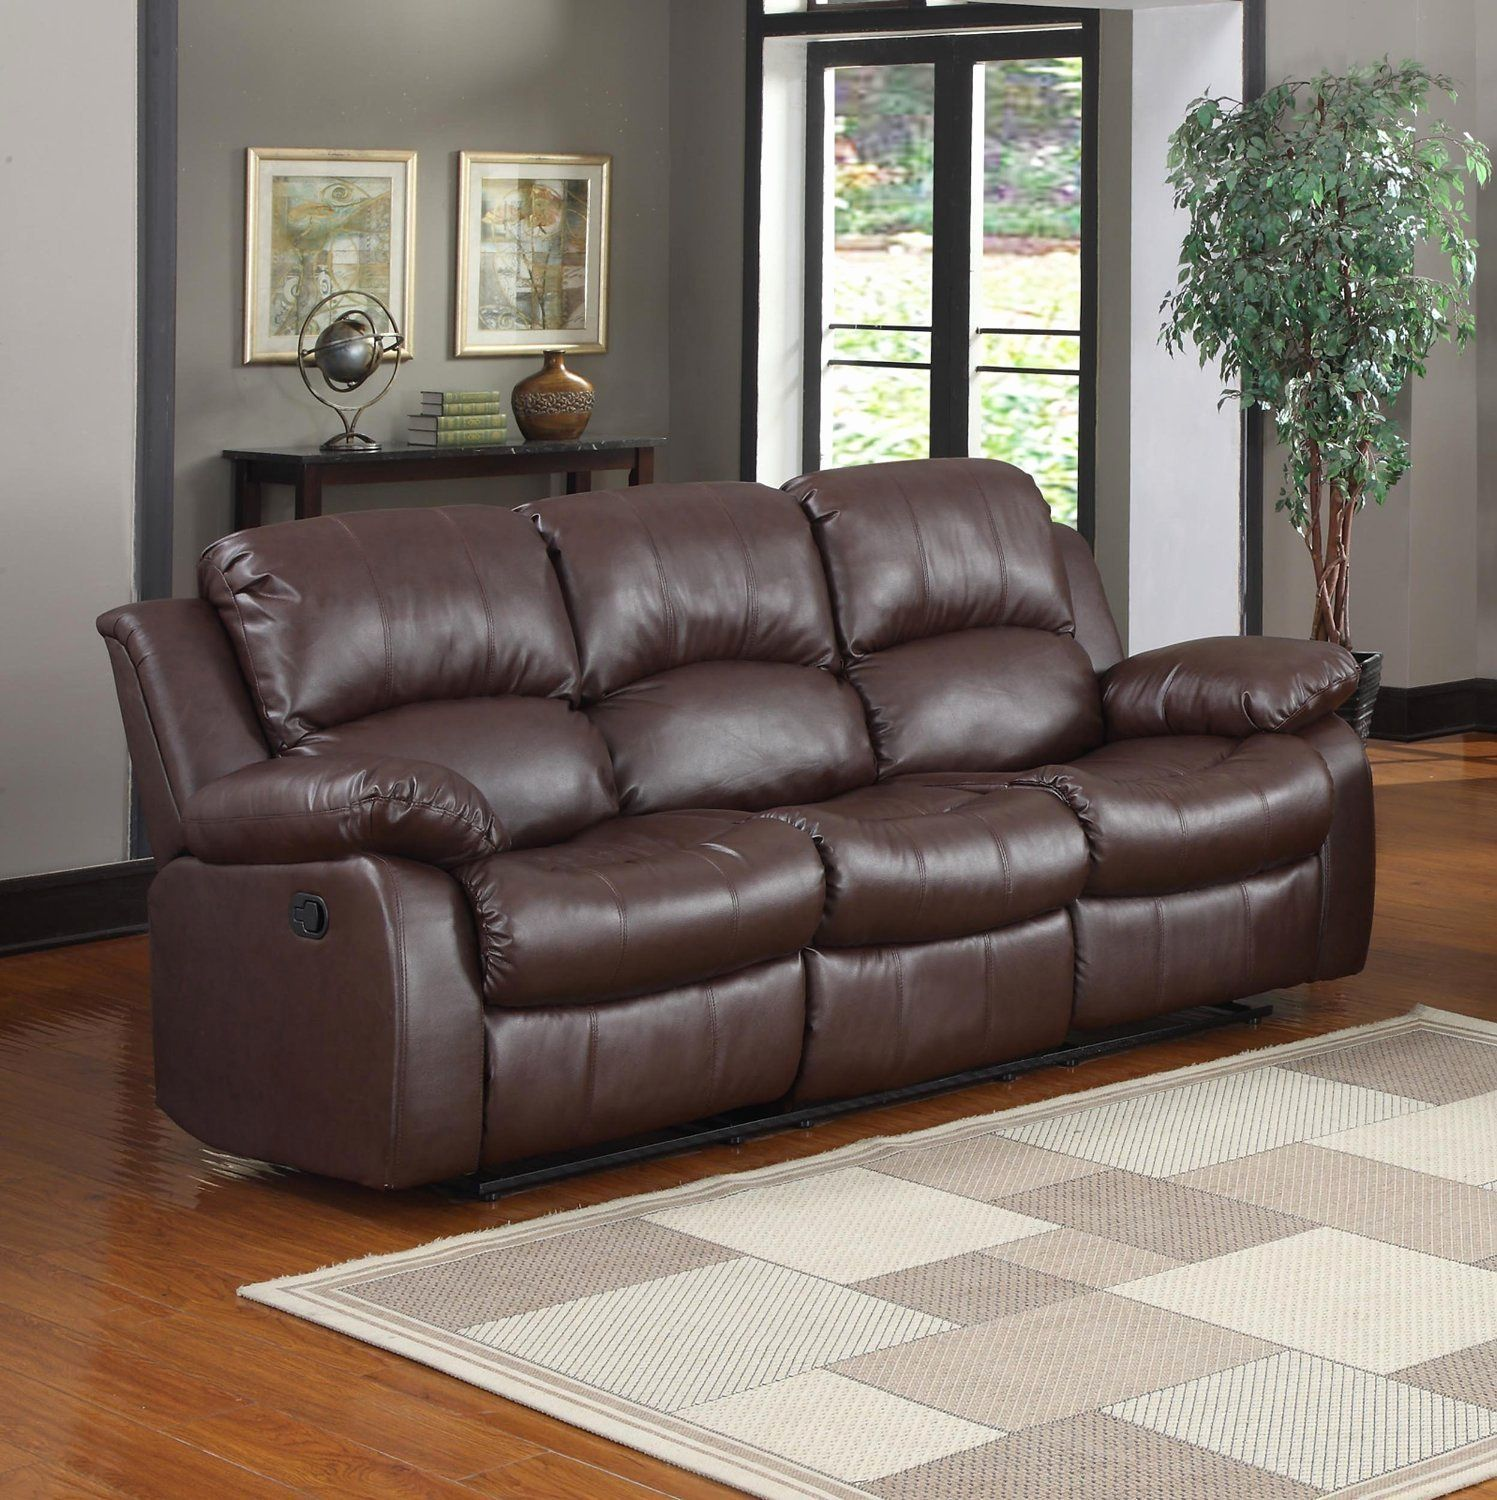 Lovely Leather Recliner Sofas Images Leather Recliner Sofas